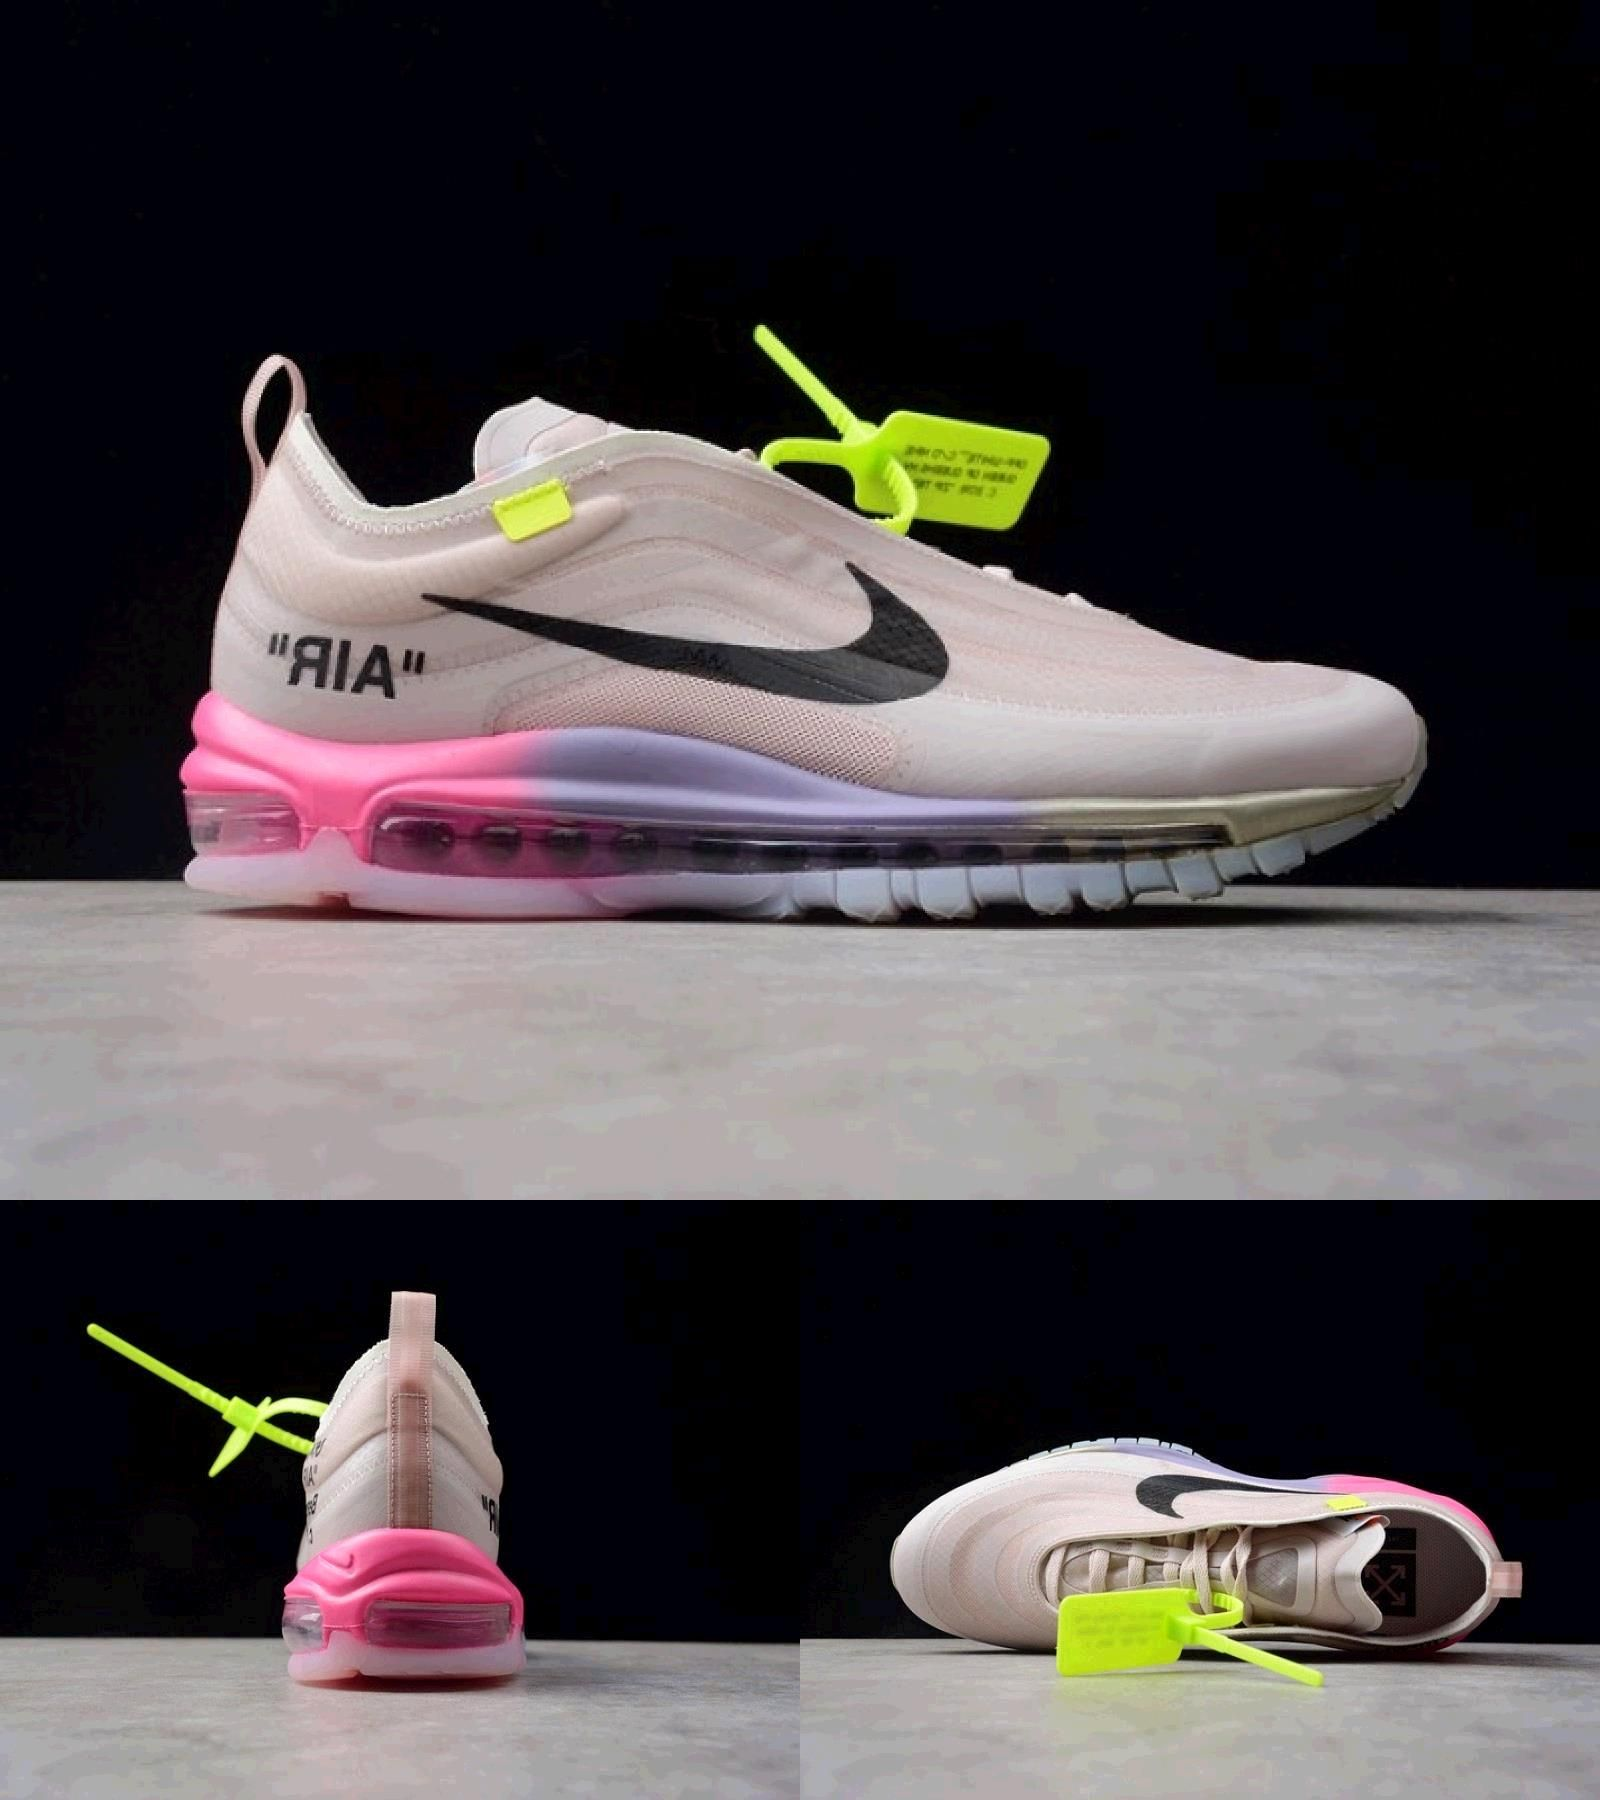 Promotion Limited Nike Off White X Air Max 97 Serena Williams Queen Aj4585 600 In 2020 Air Max 97 Sport Shoes Women Womens Sneakers